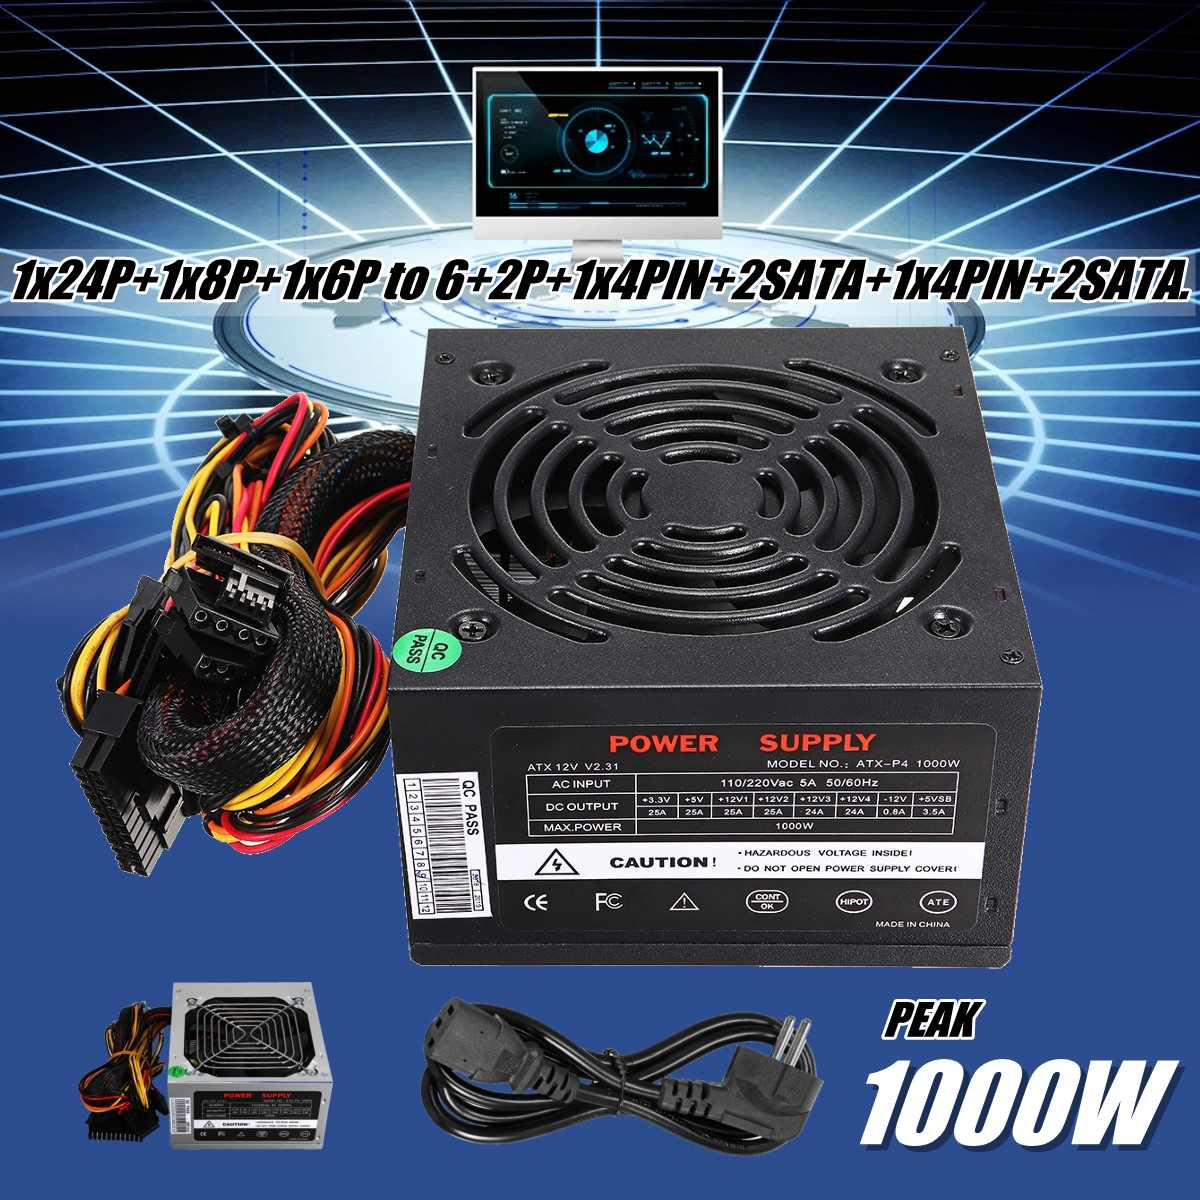 Max 1000W Power Supply PSU PFC Silent Fan ATX 24pin 12V PC Computer SATA Gaming PC Power Supply For Intel AMD Computer Black